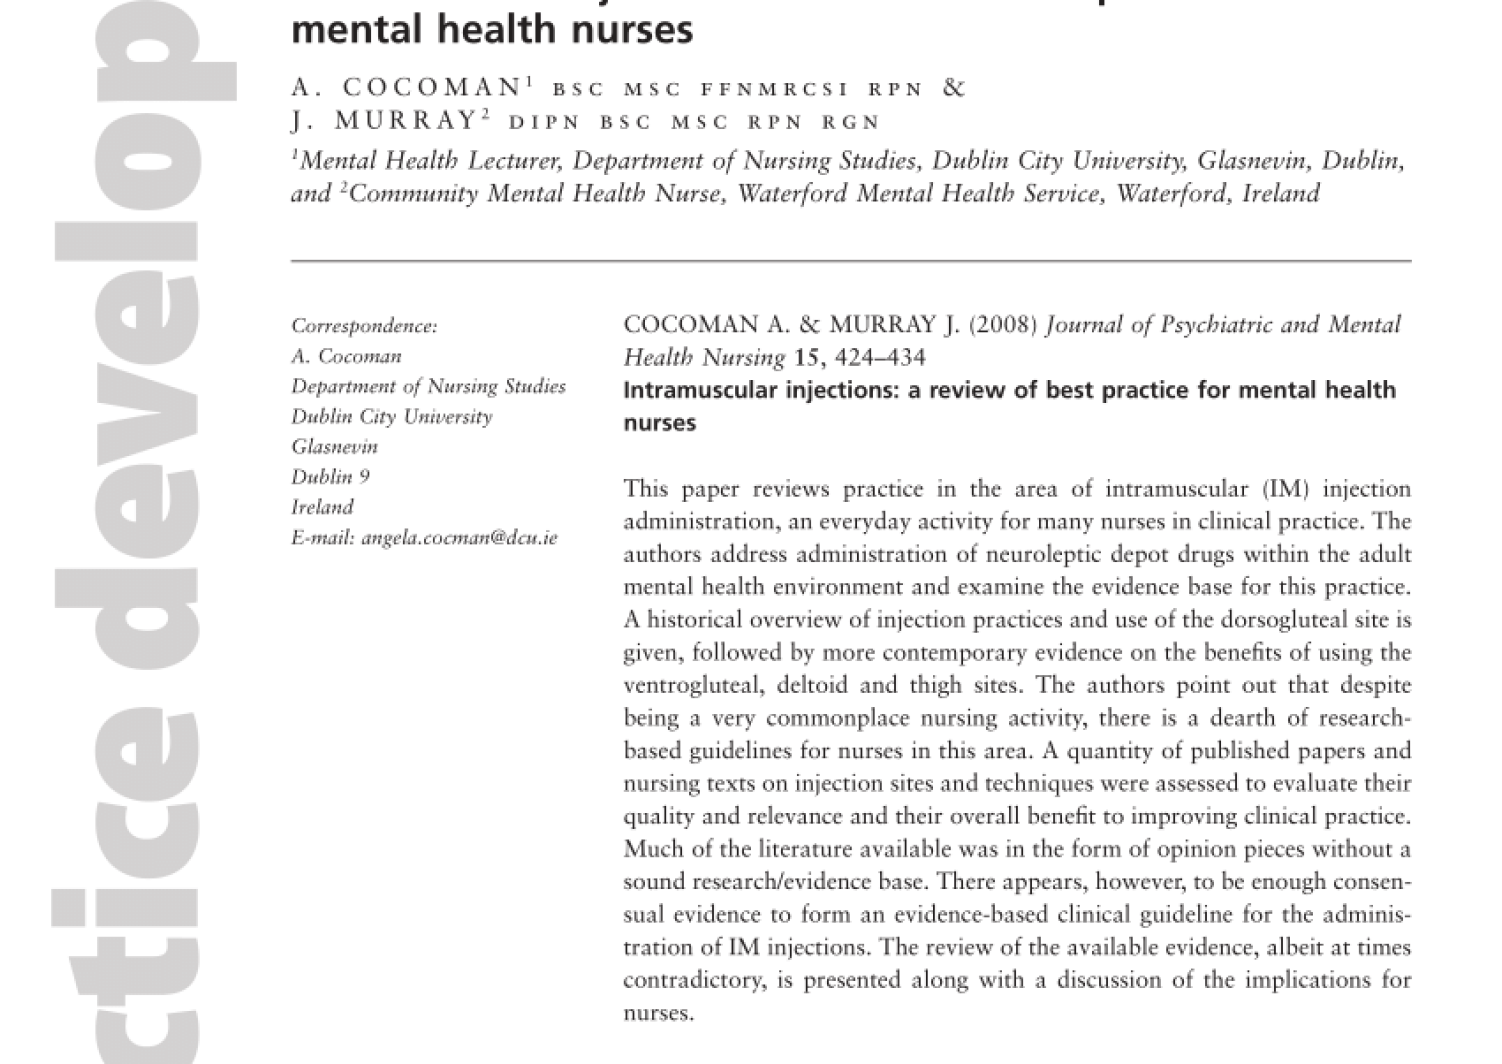 Pdf Intramuscular Injections A Review Of Best Practice For Mental Health Nurses